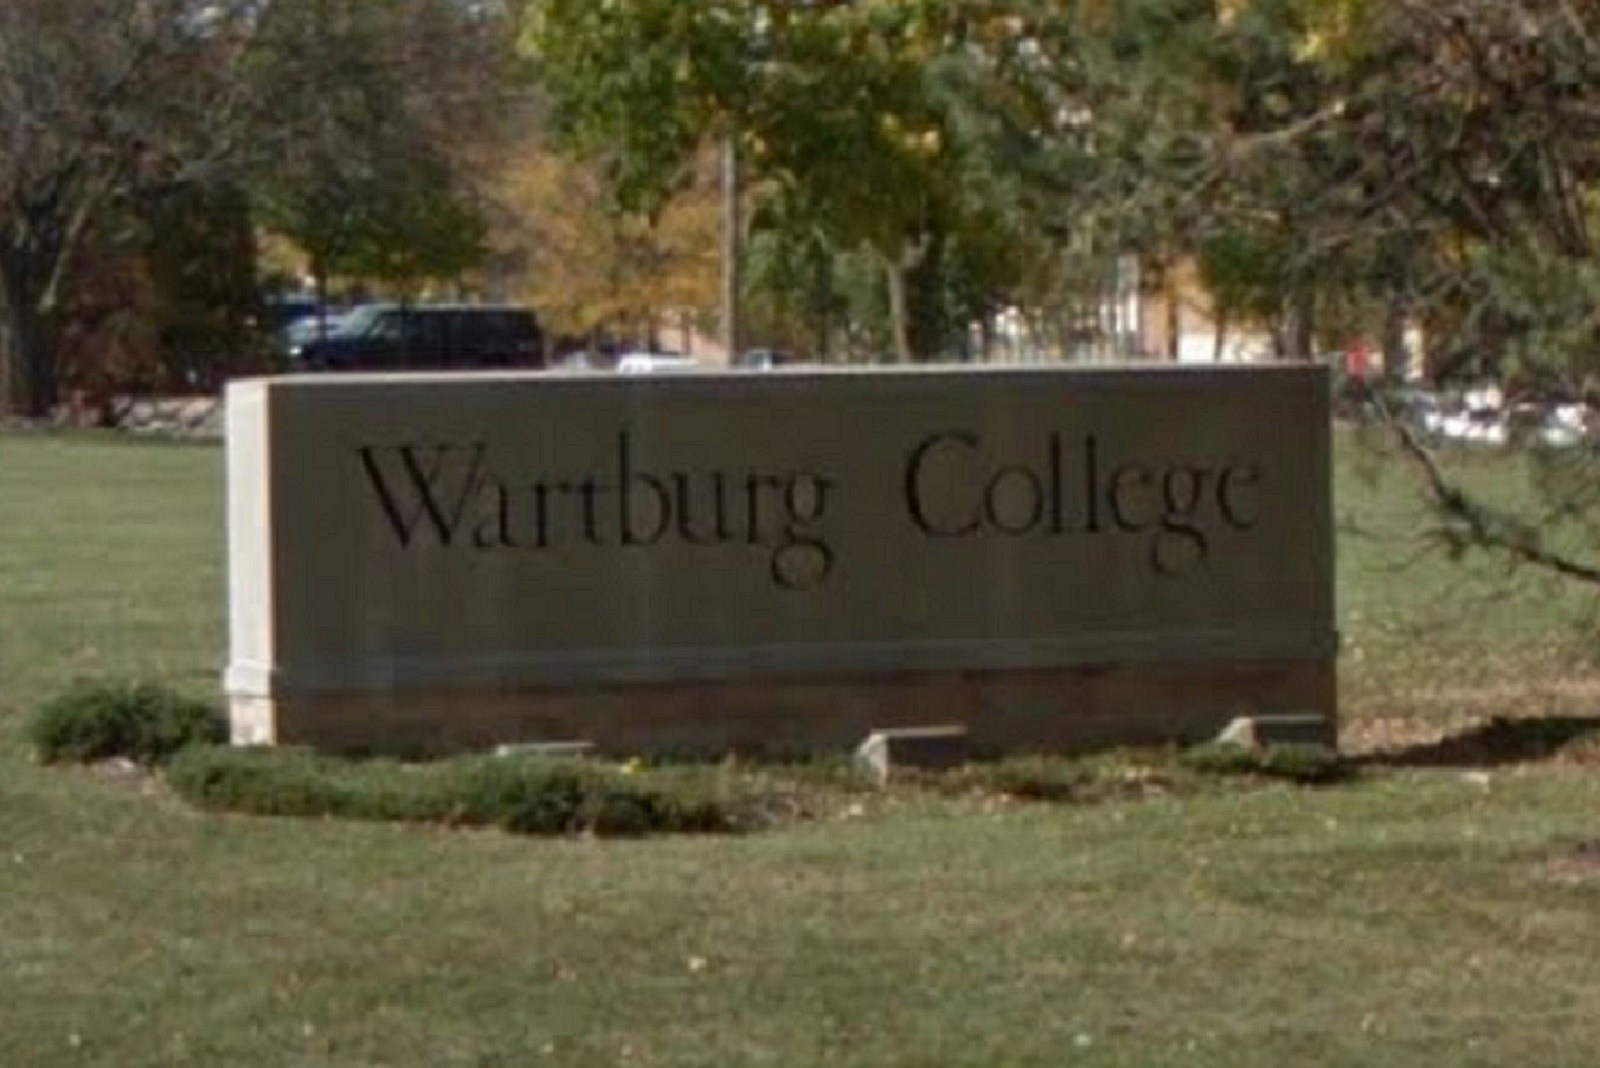 Wartburg College Campus Map.Wartburg College To Hold 166th Commencement Ceremony